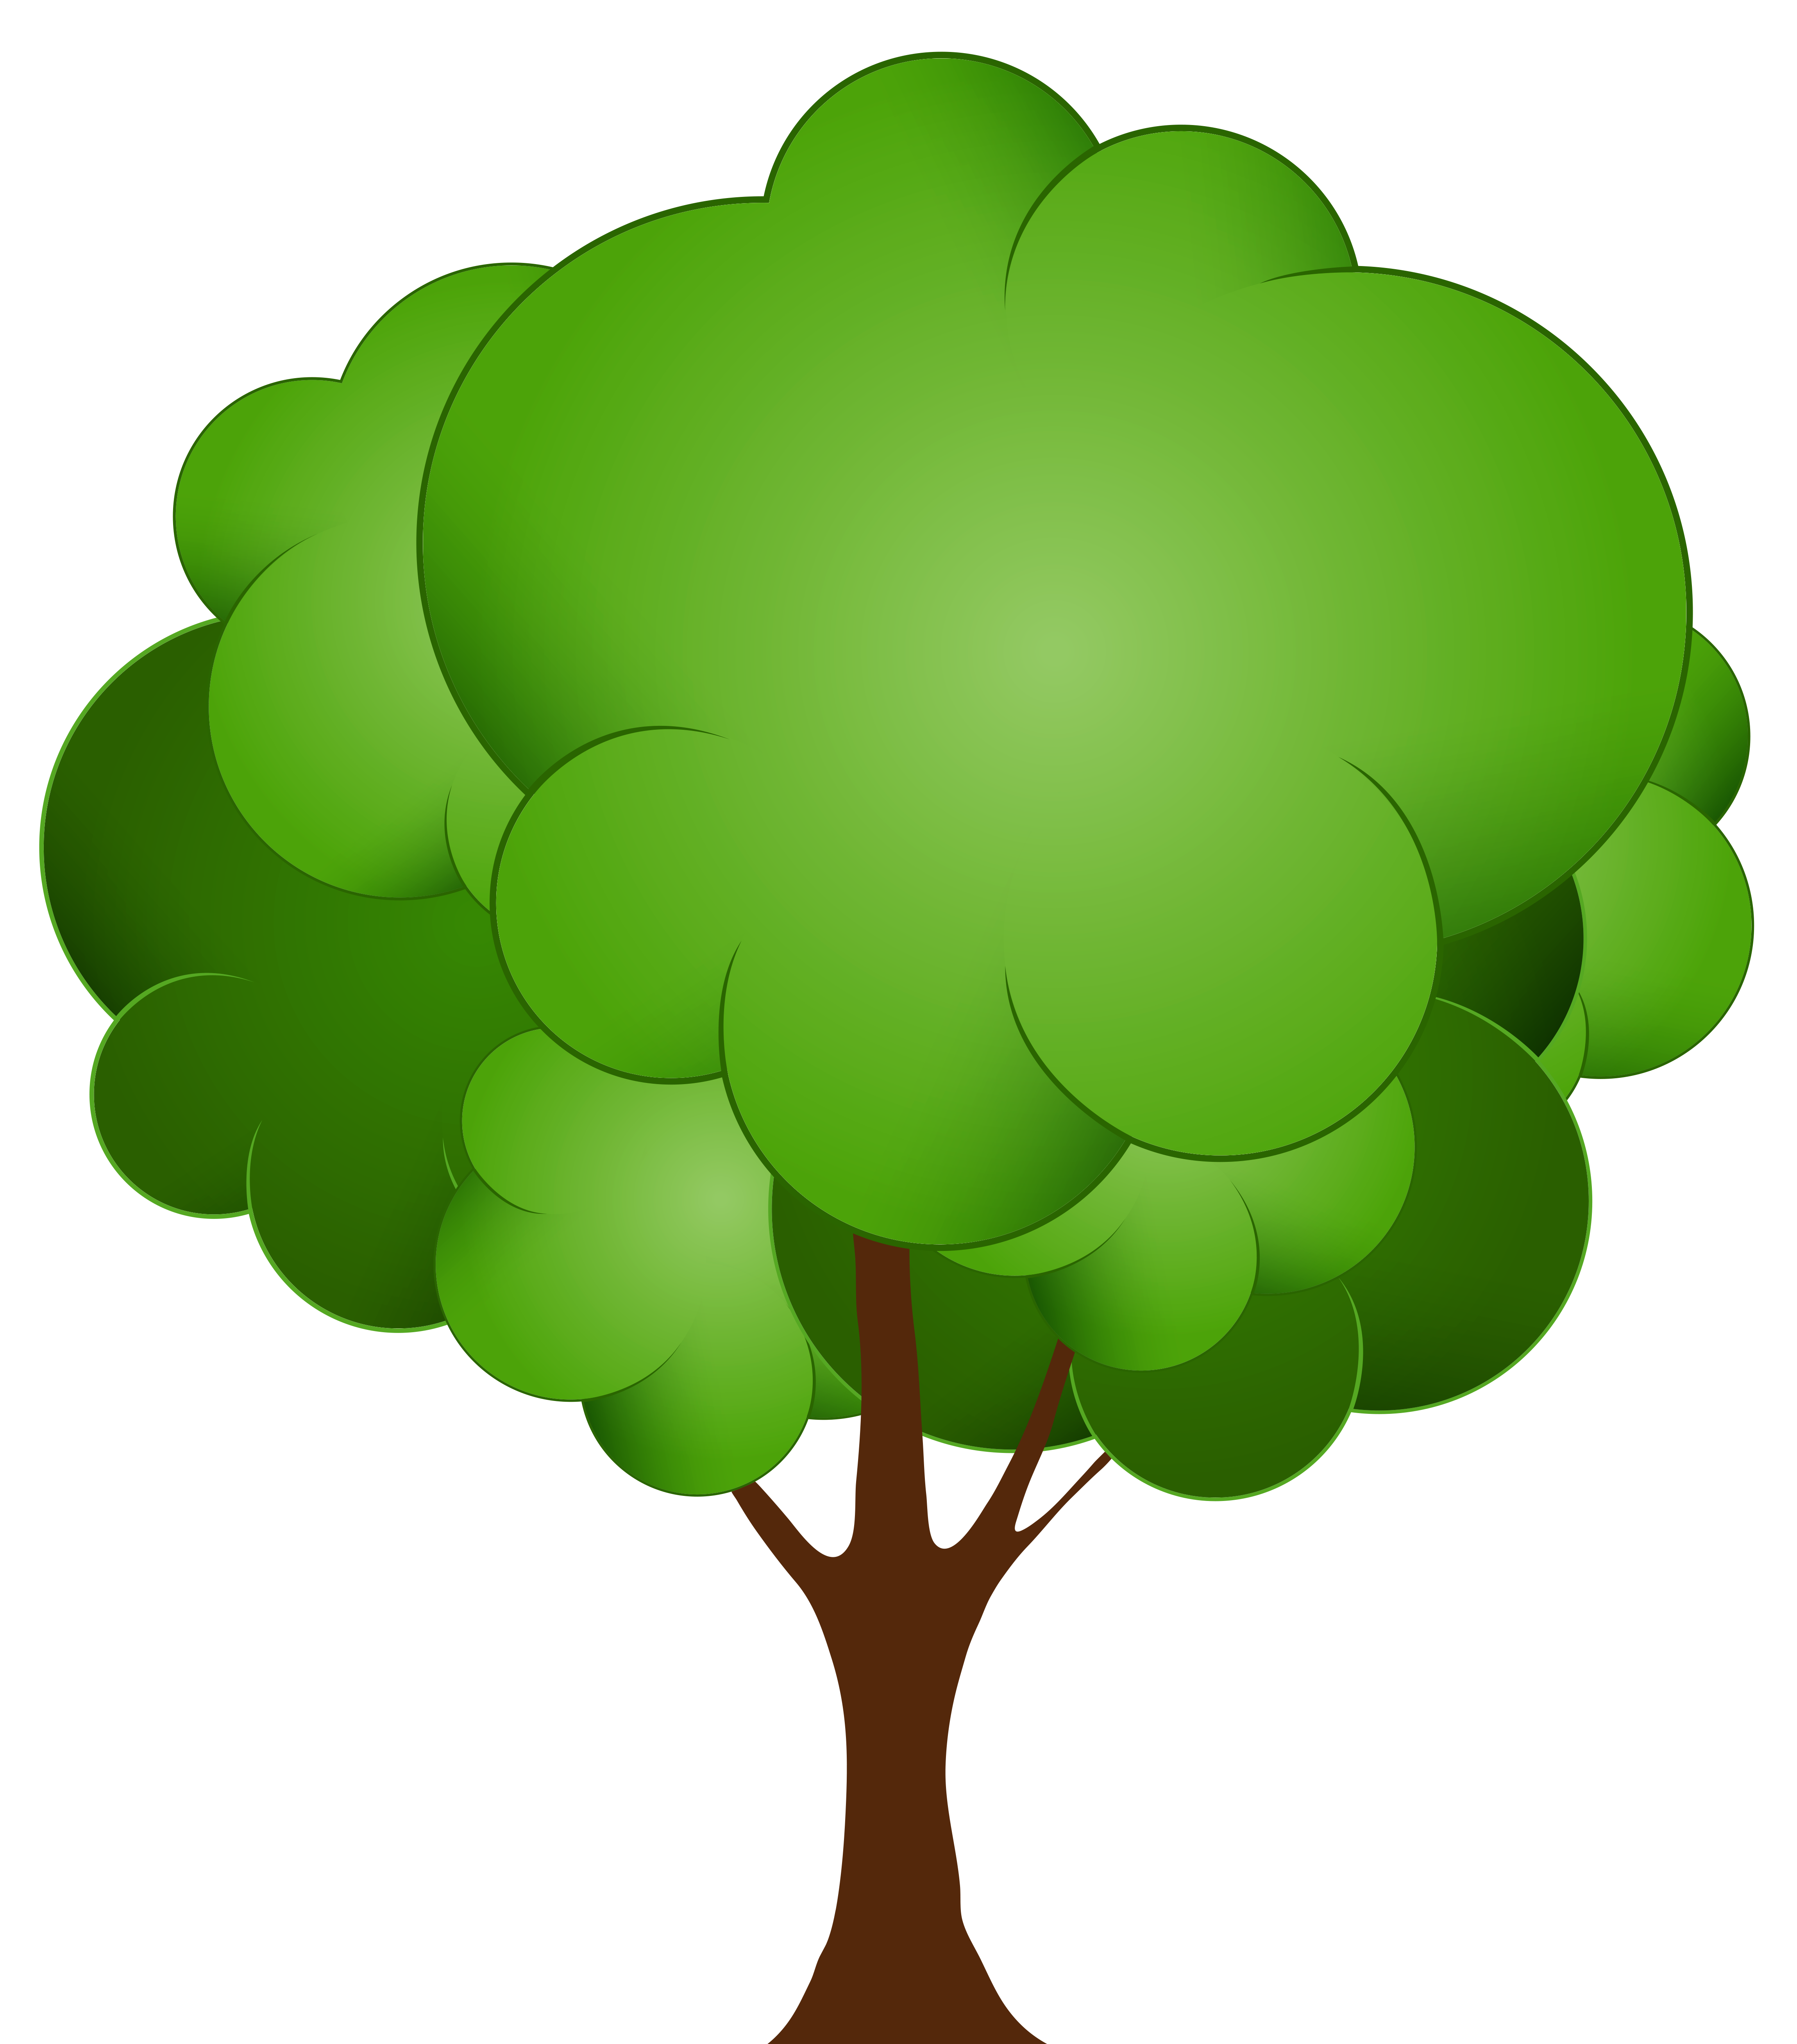 Greentree clipart clipart royalty free stock Green Tree PNG Clip Art - Best WEB Clipart clipart royalty free stock